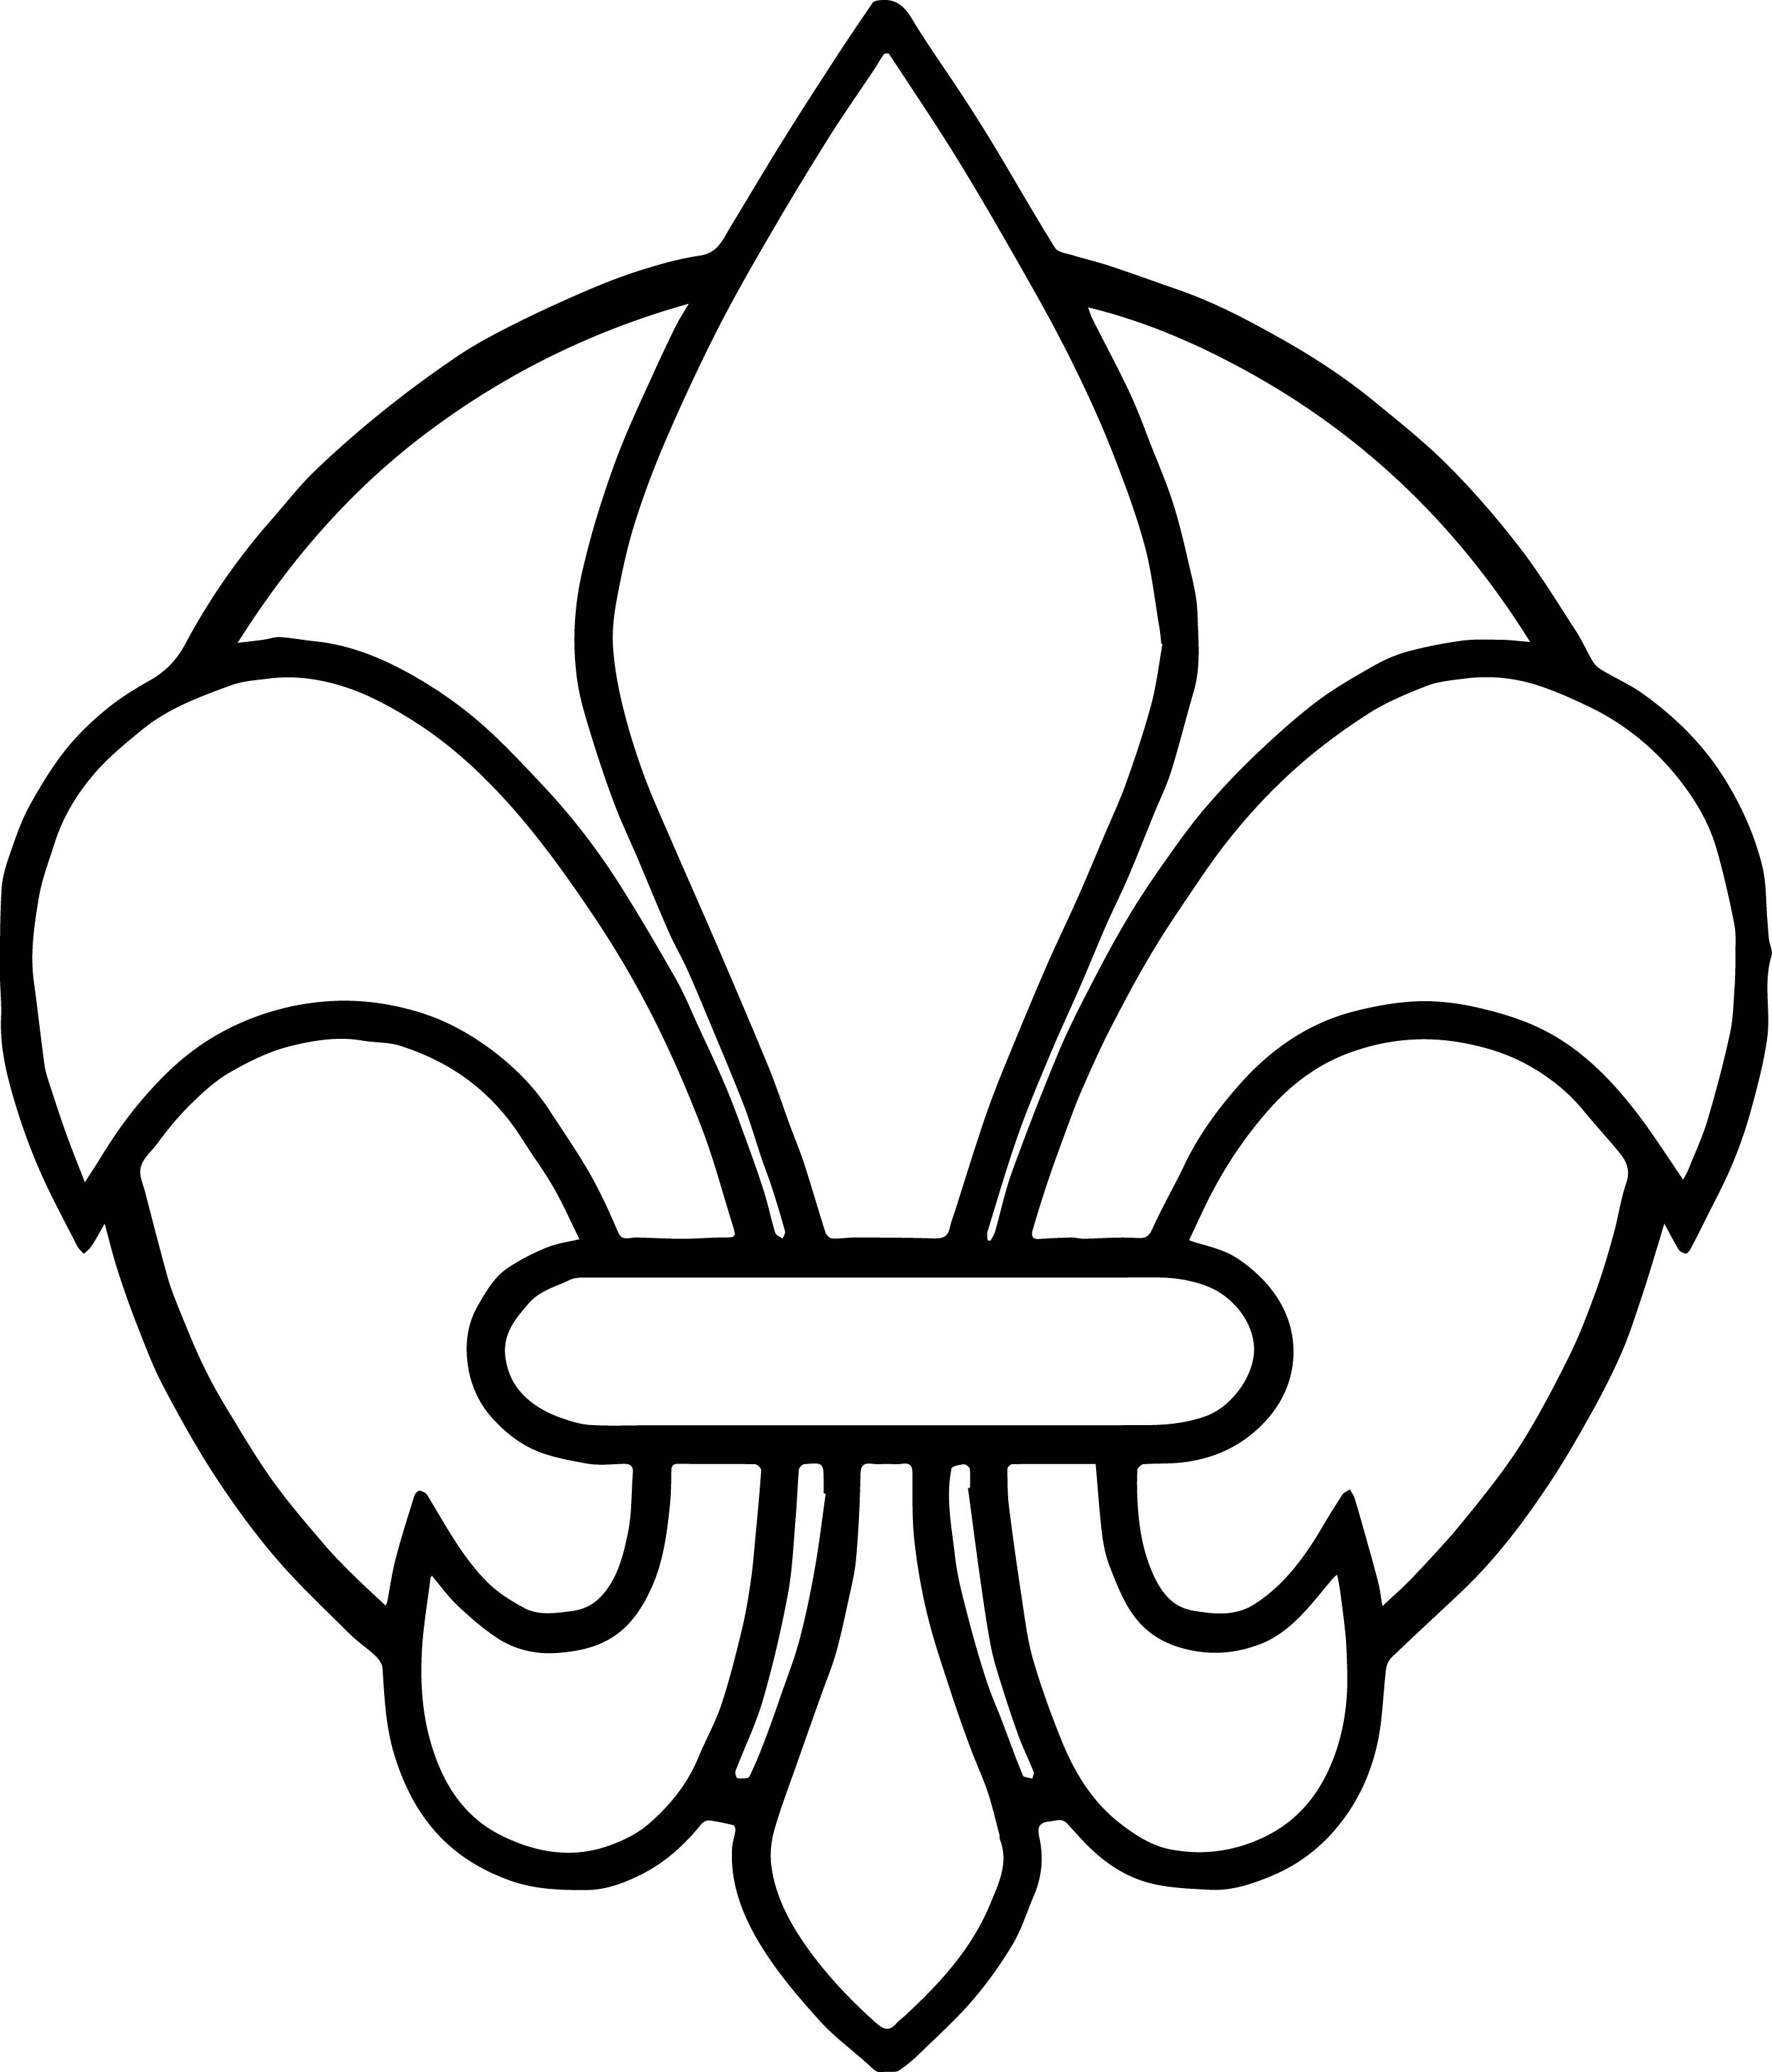 how to draw a fleur de lis learn how to draw fleur de lis symbols step by step fleur how de a lis draw to